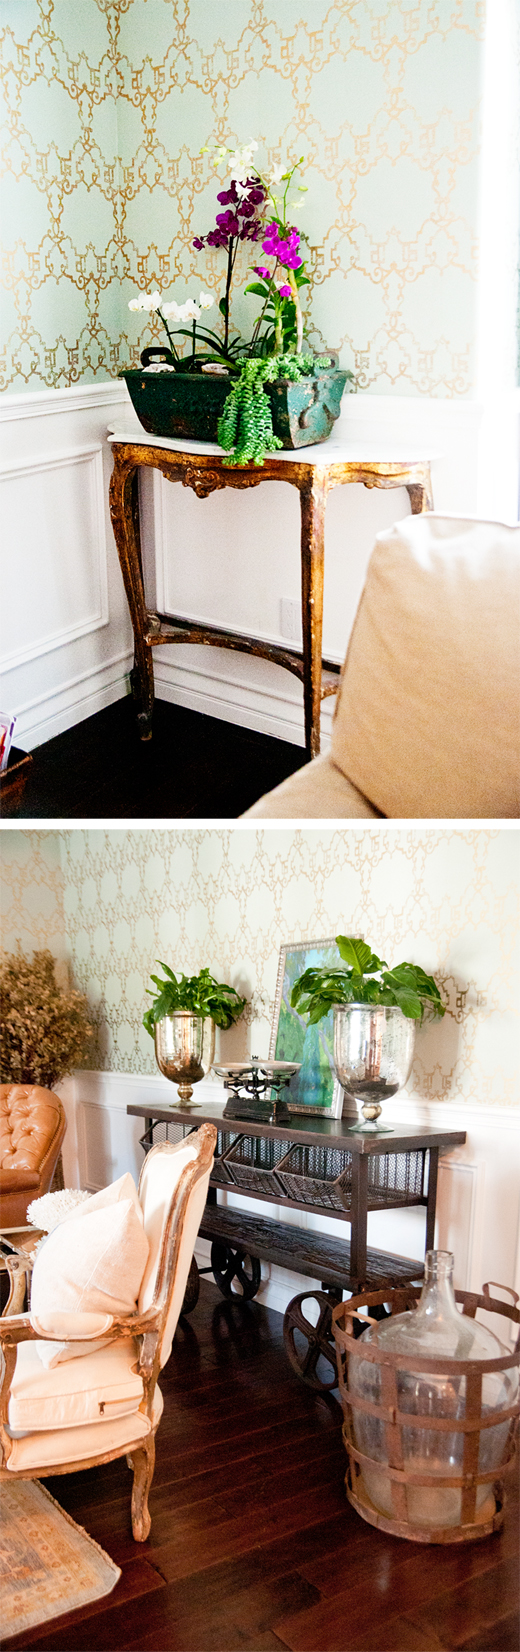 Keep a room alive with Orchids + Plants | D.L. Rhein